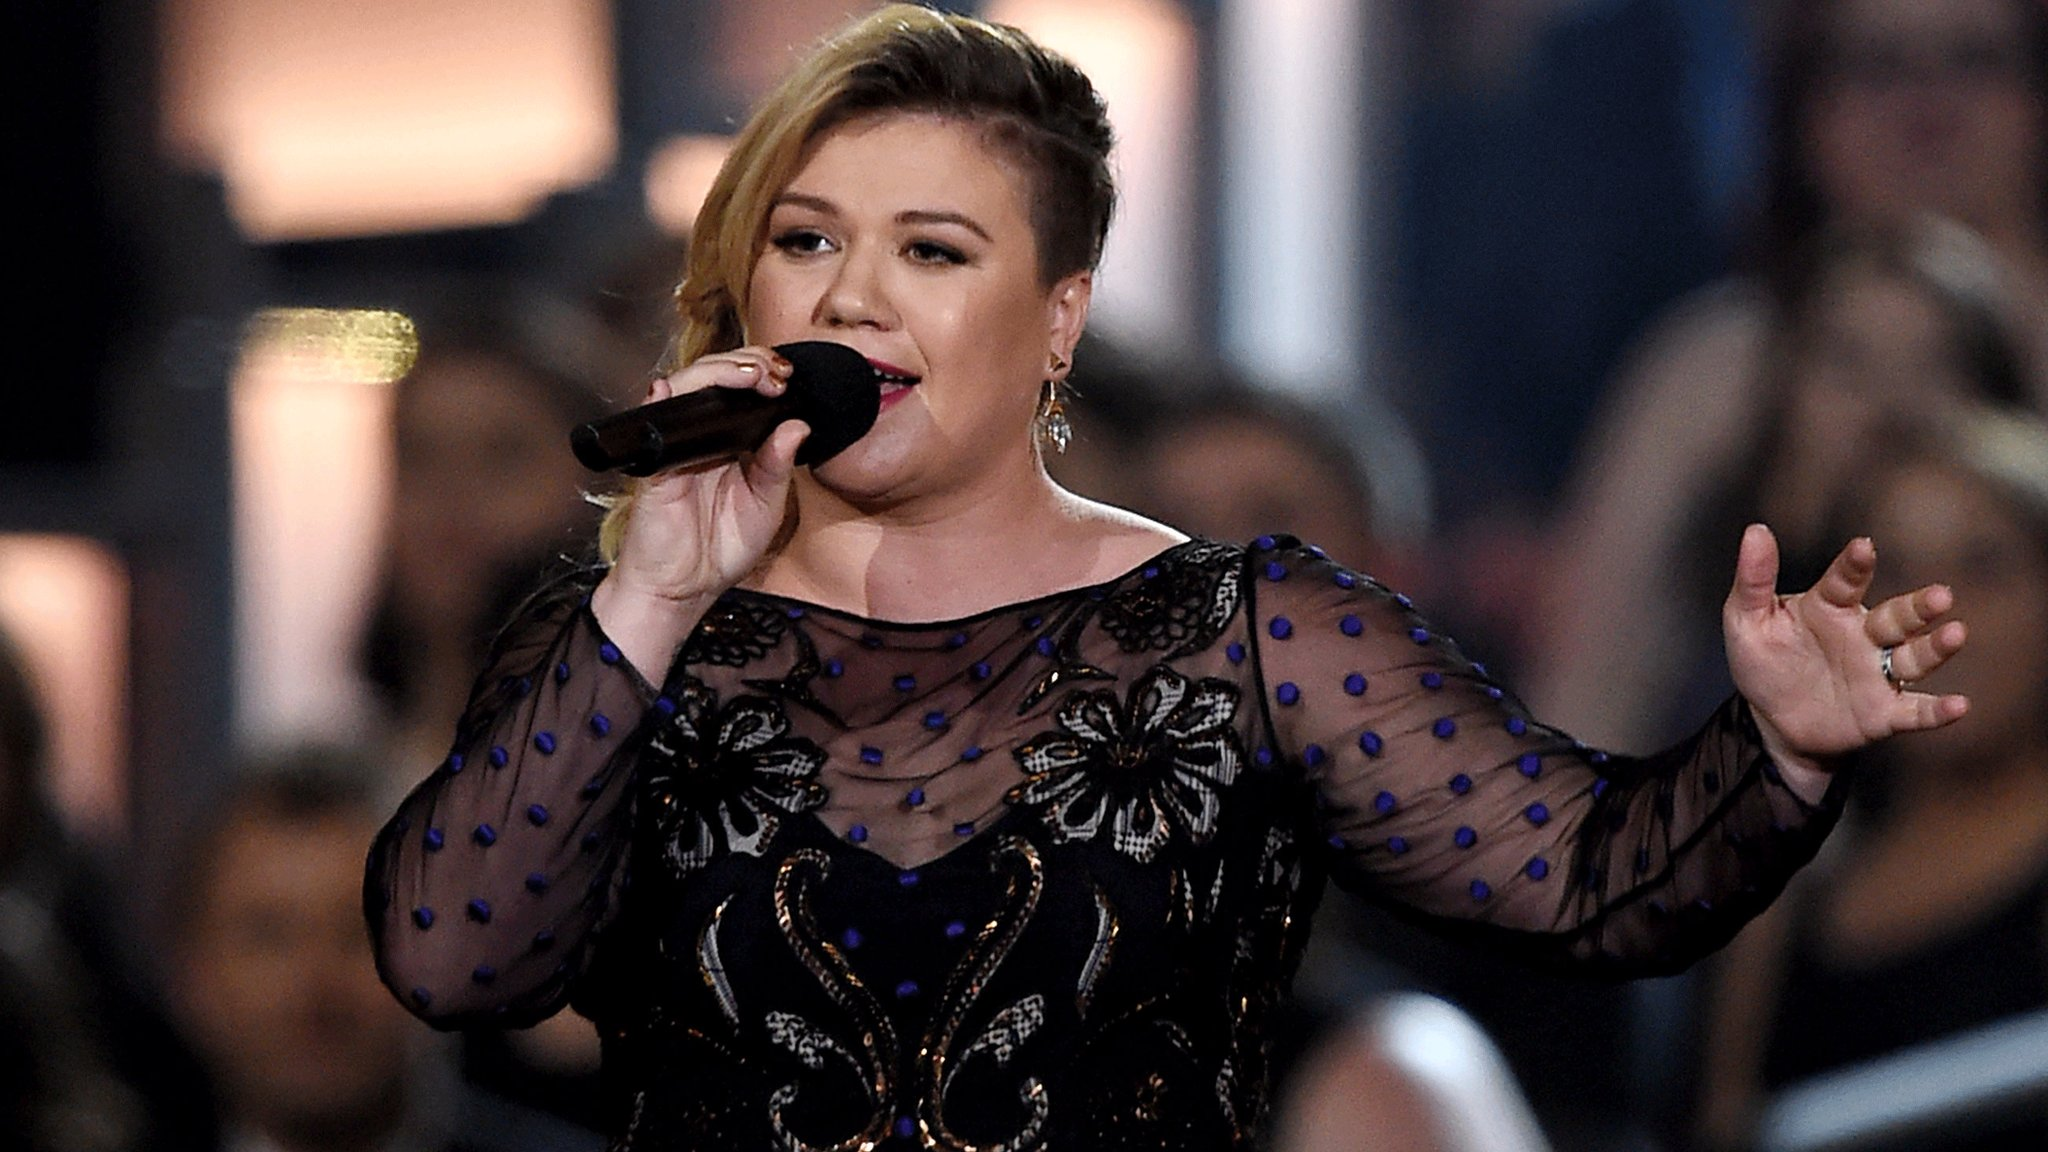 BBC News - Kelly Clarkson: 'When I was skinny I considered suicide'